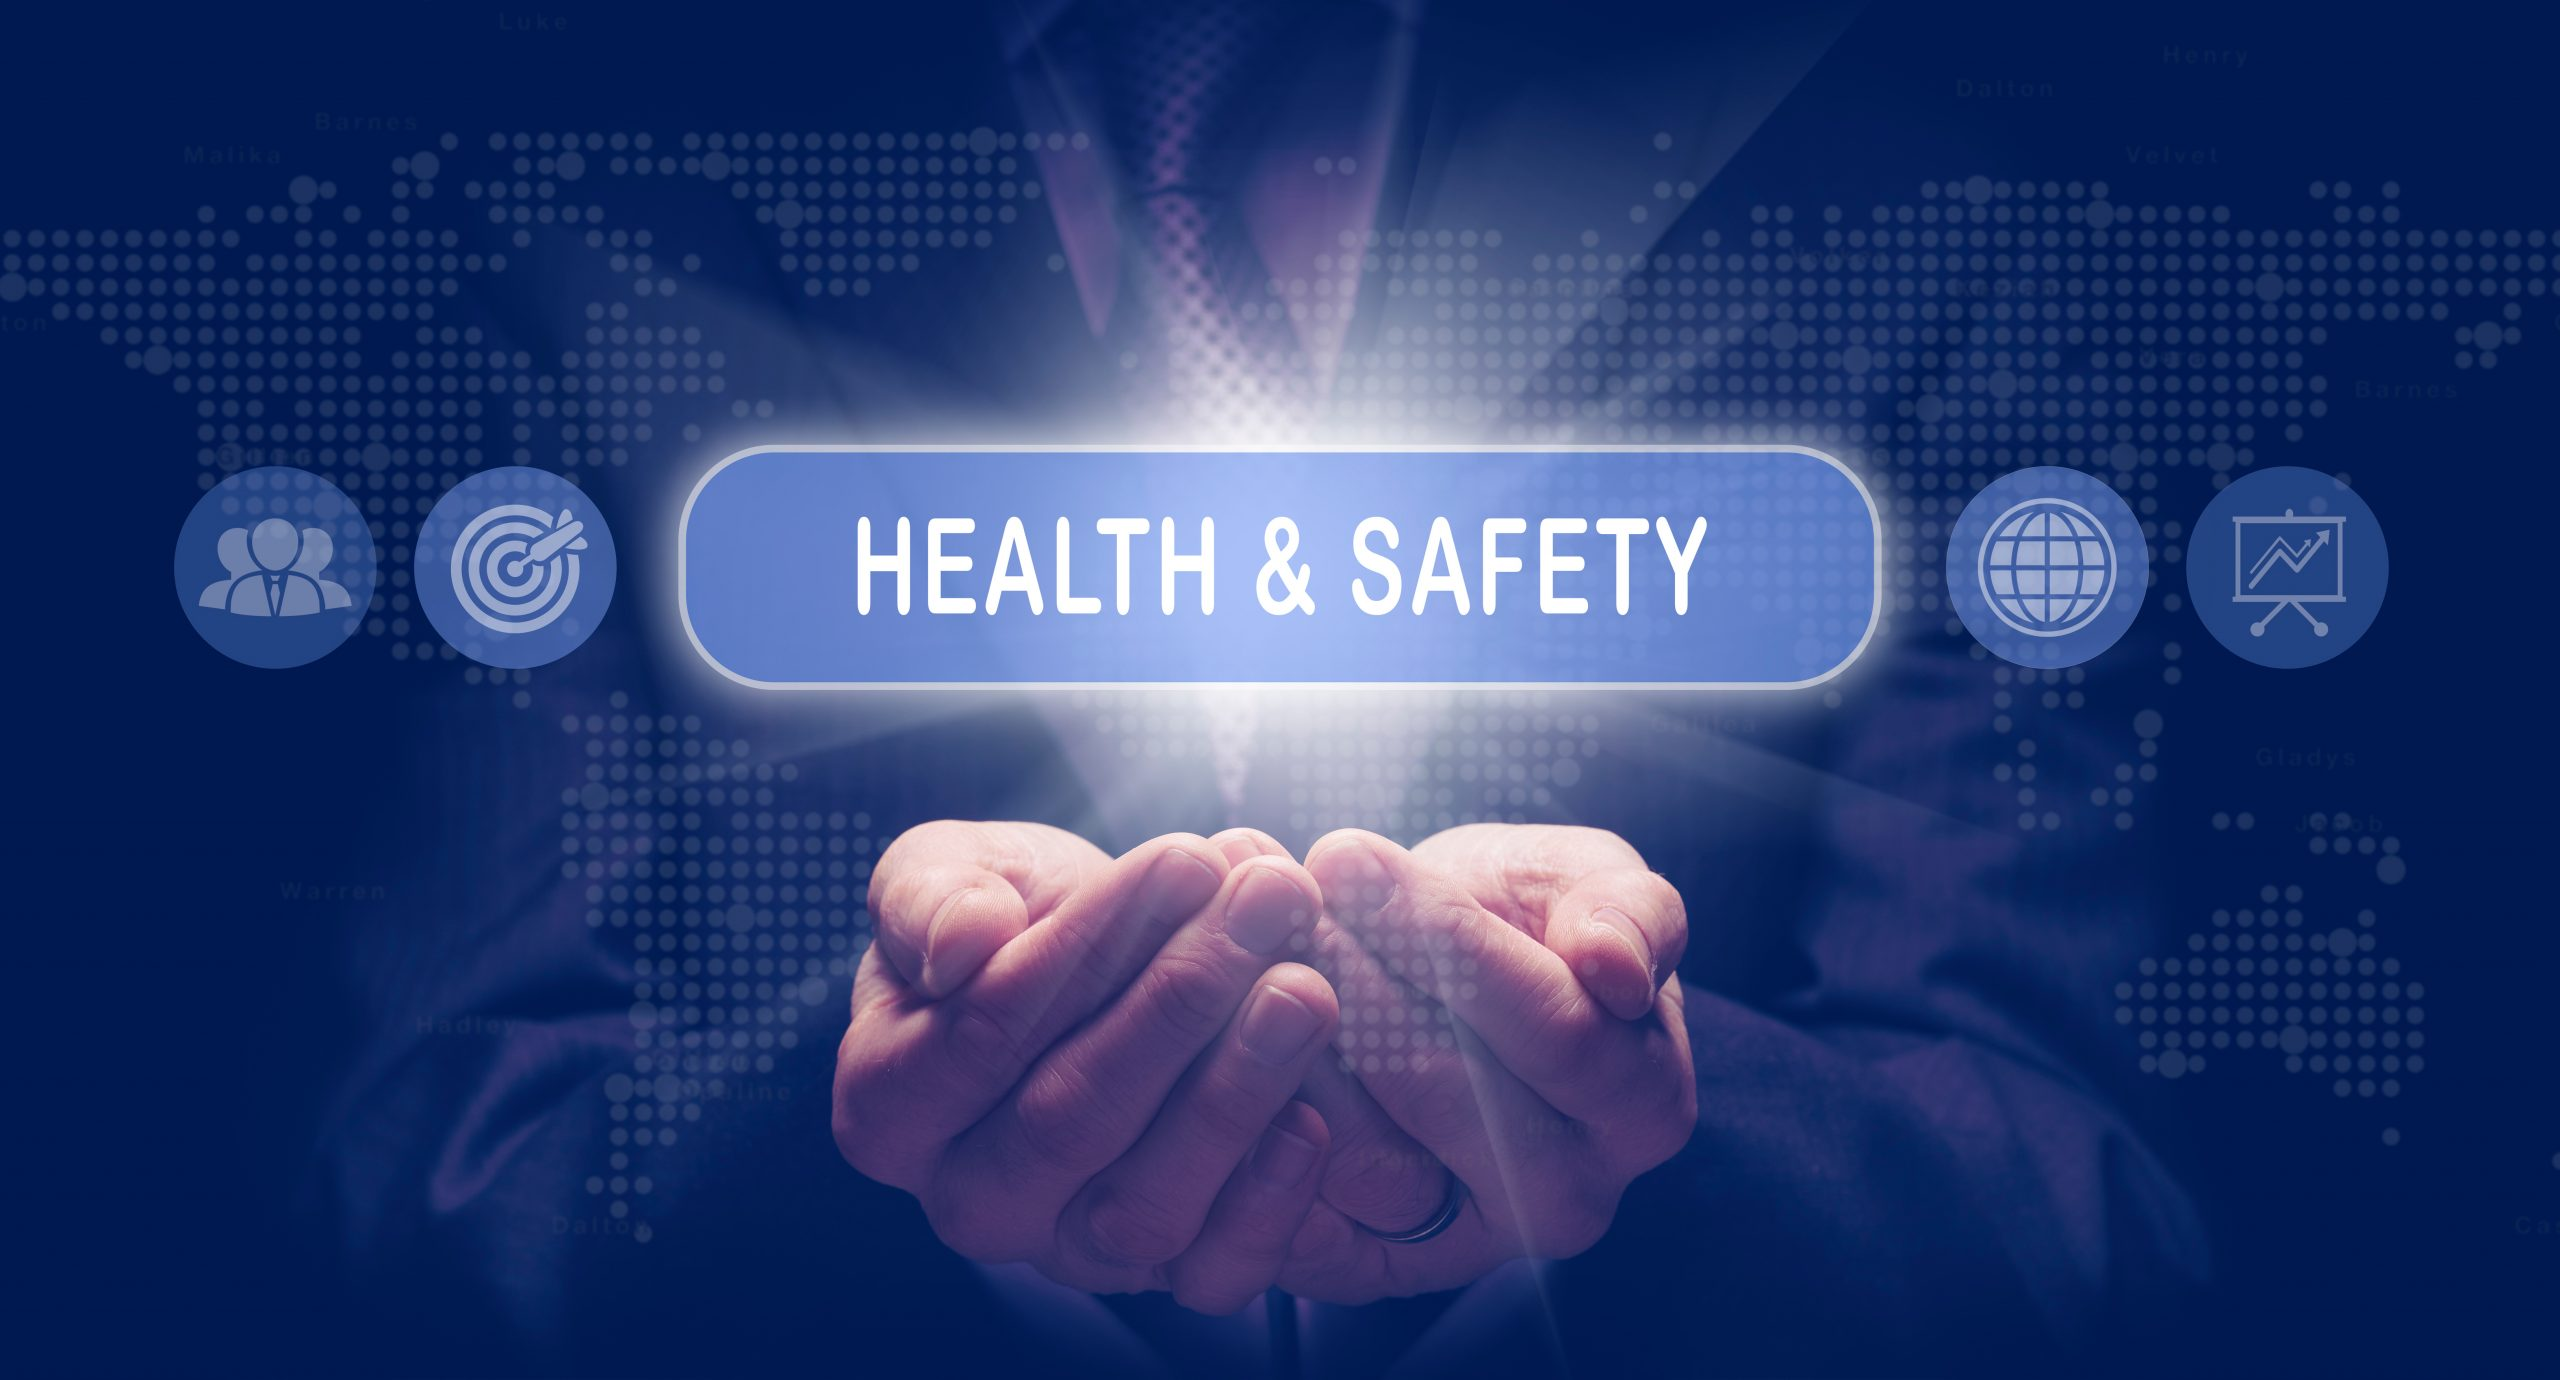 Health and Safety ebytes package 8 short videos